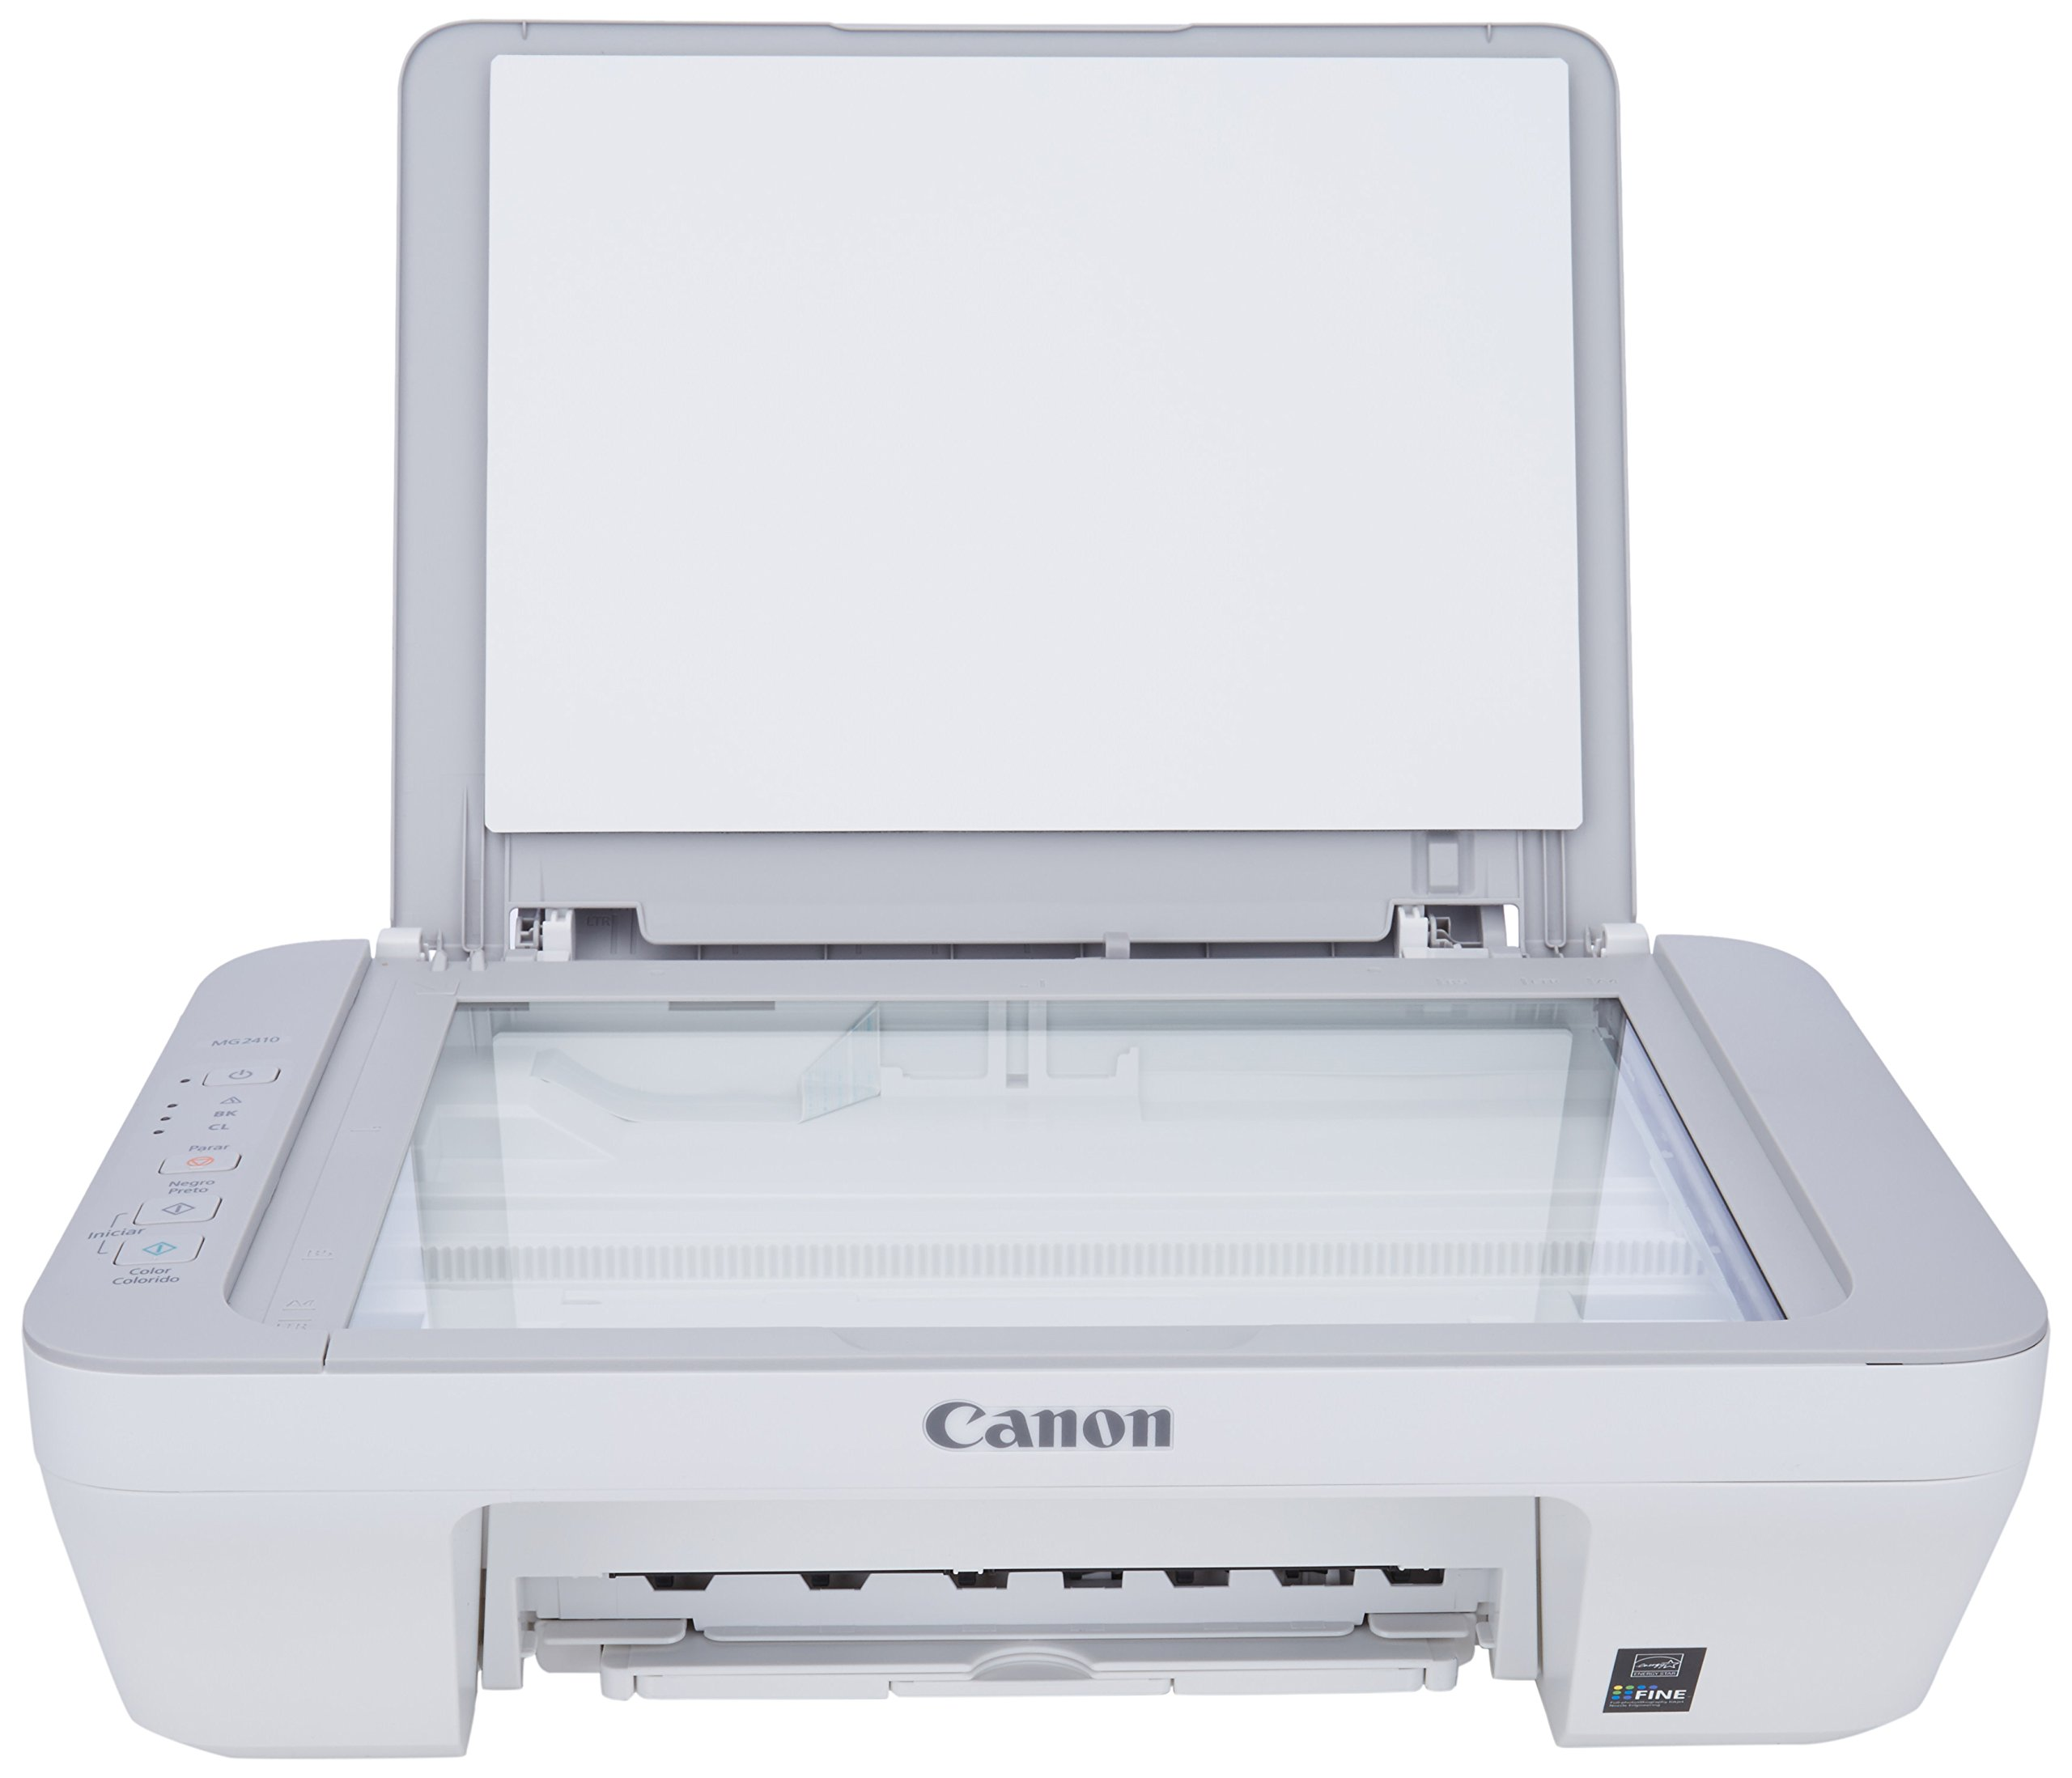 Canon MG2410 Pixma Mg2410 Photo All-in-one Inkjet Printer by Canon (Image #2)